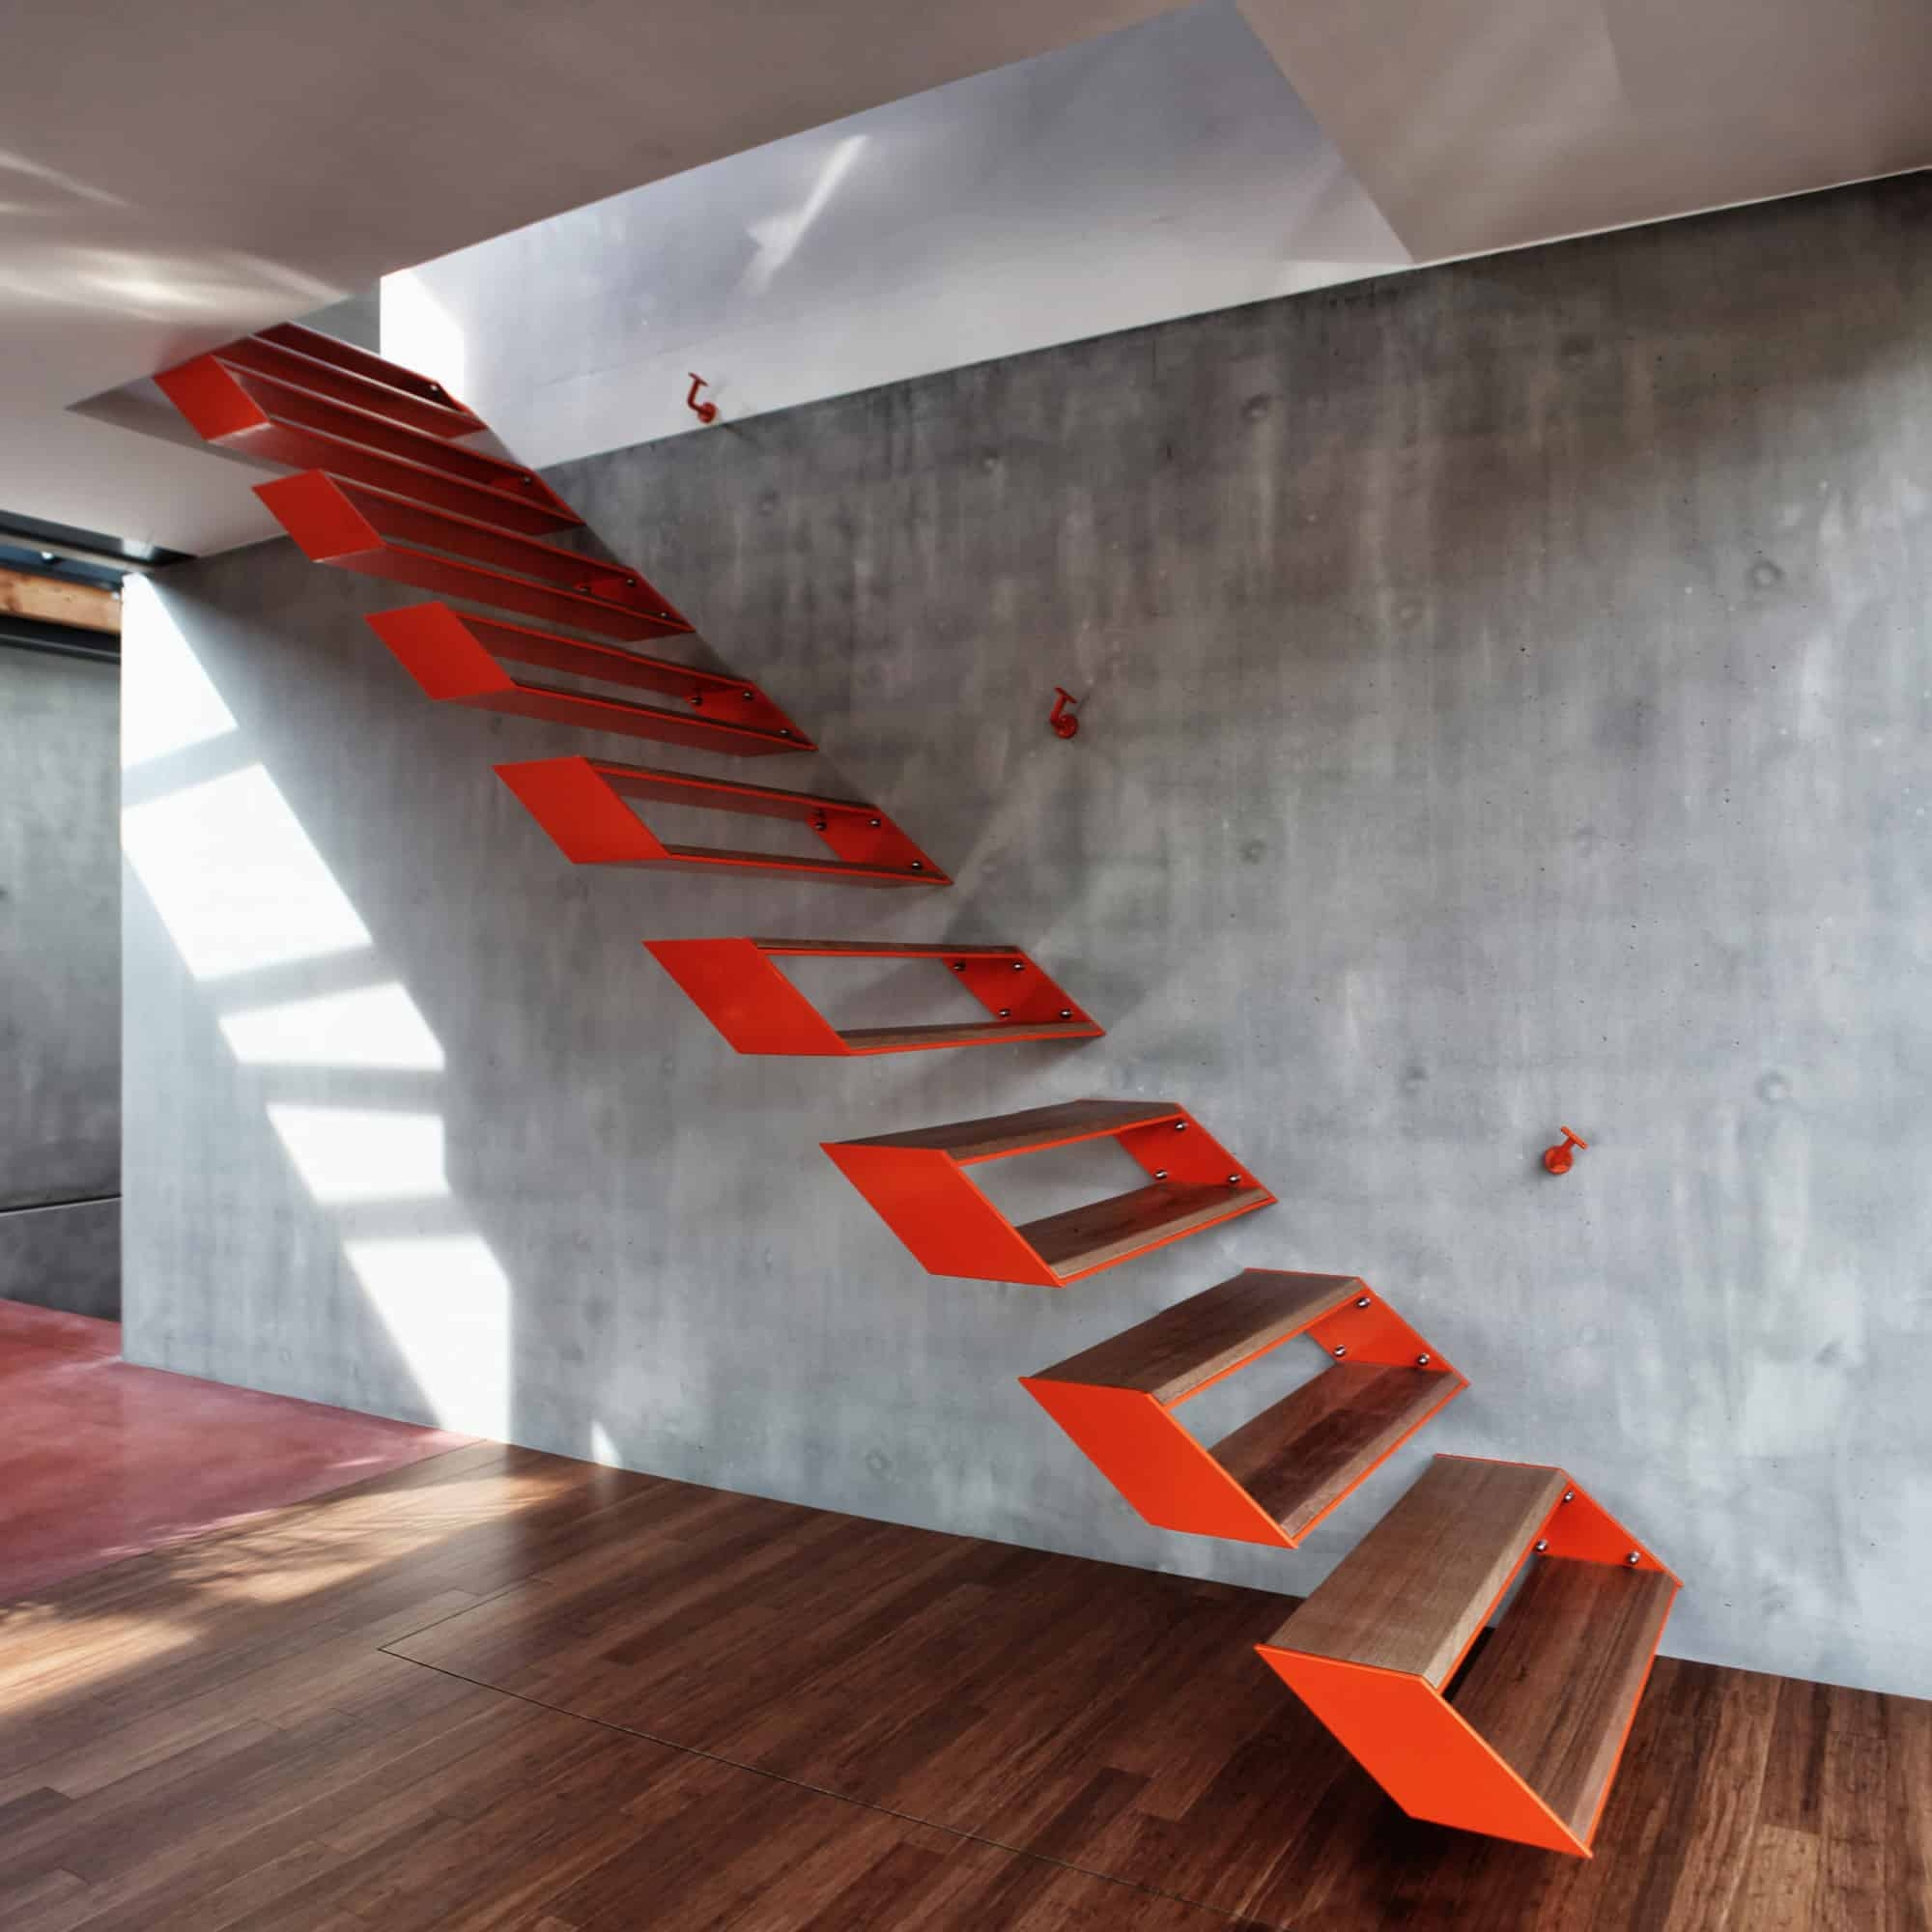 Modern Steel Staircase Design   Steel Steps For Stairs   Chequer Plate   Fabricated   Wire Mesh   Prefabricated   Corrugated Metal